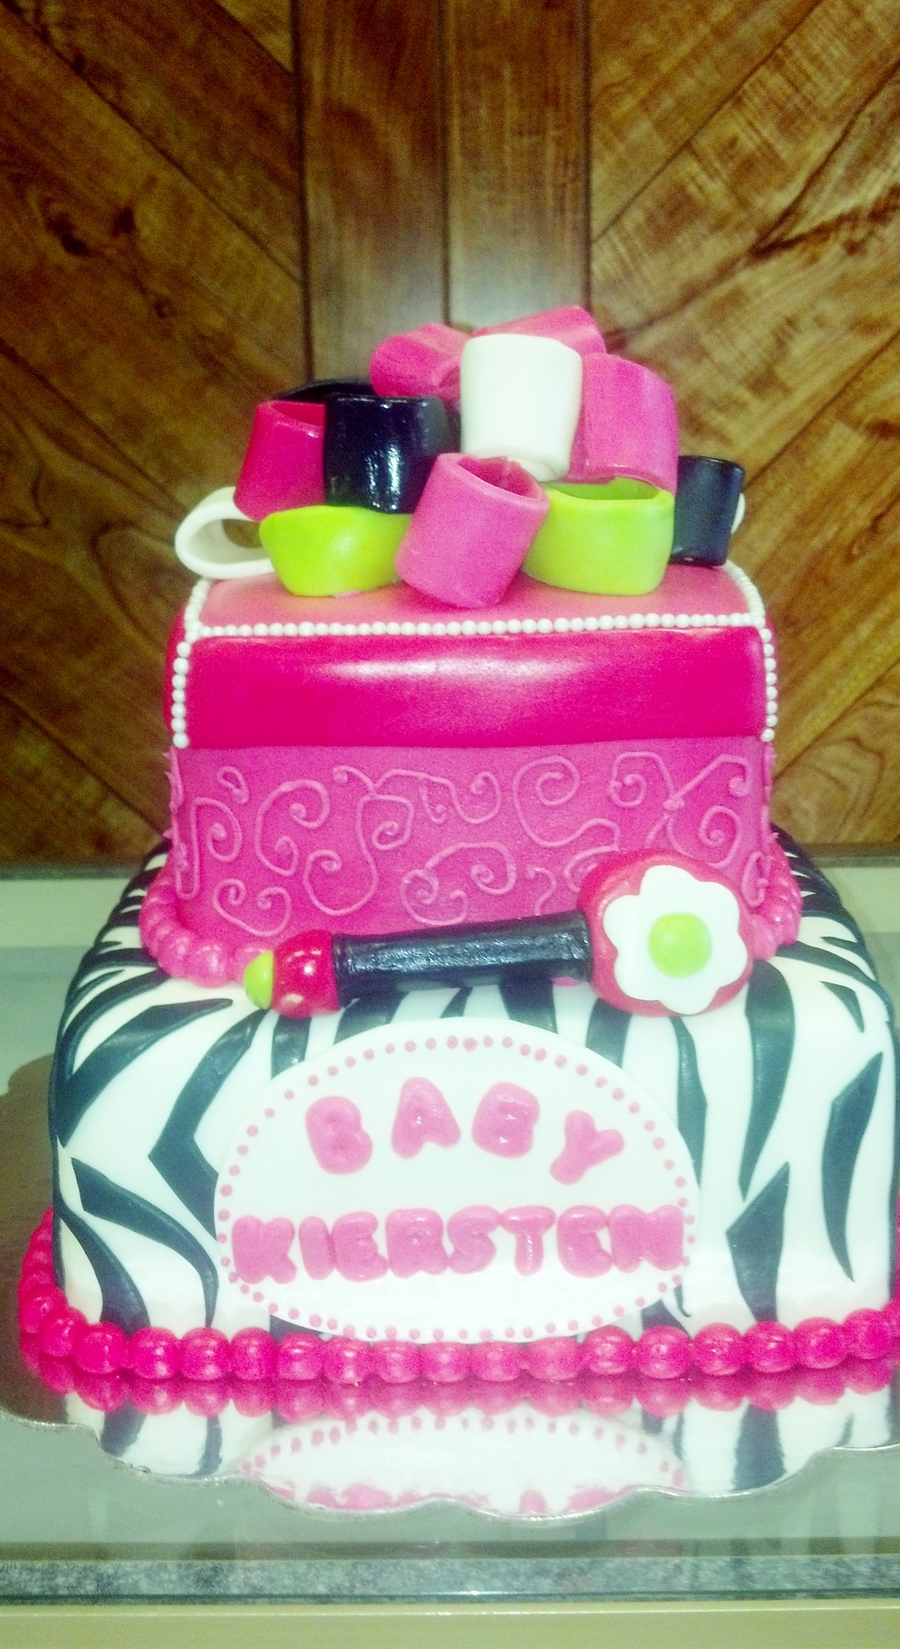 Baby Shower Cake By Pamcakes on Cake Central